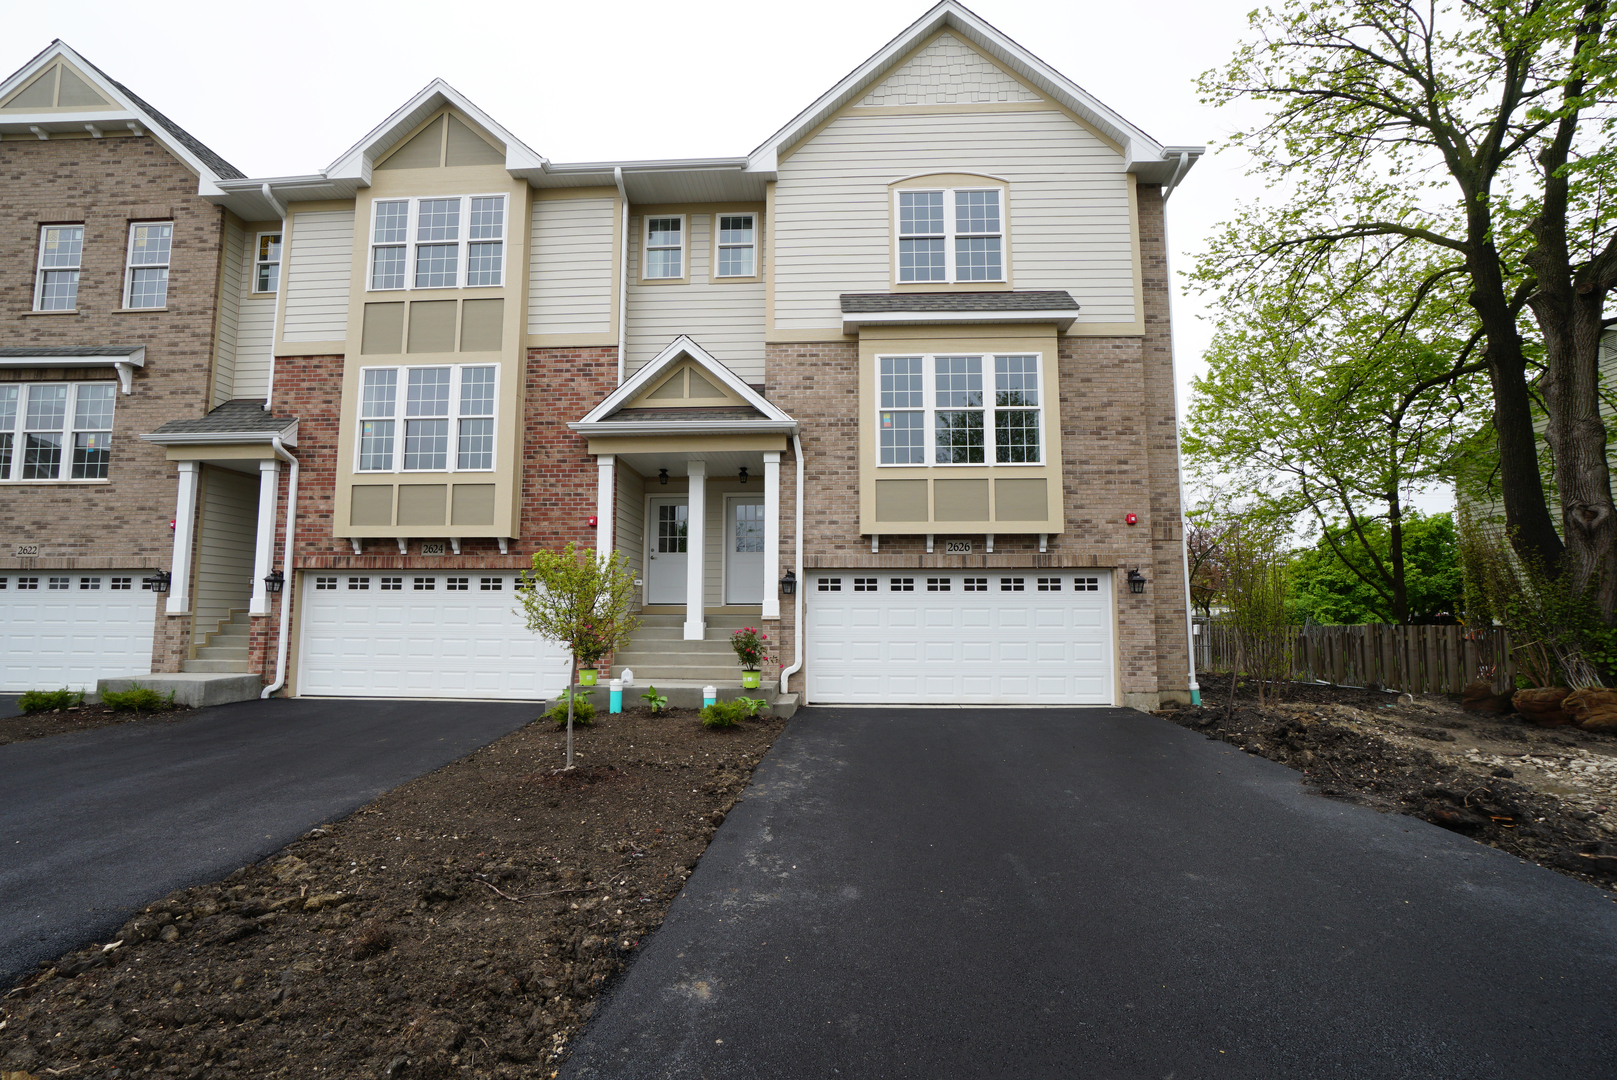 2626 Chelsey Street, Buffalo Grove in Lake County, IL 60089 Home for Sale